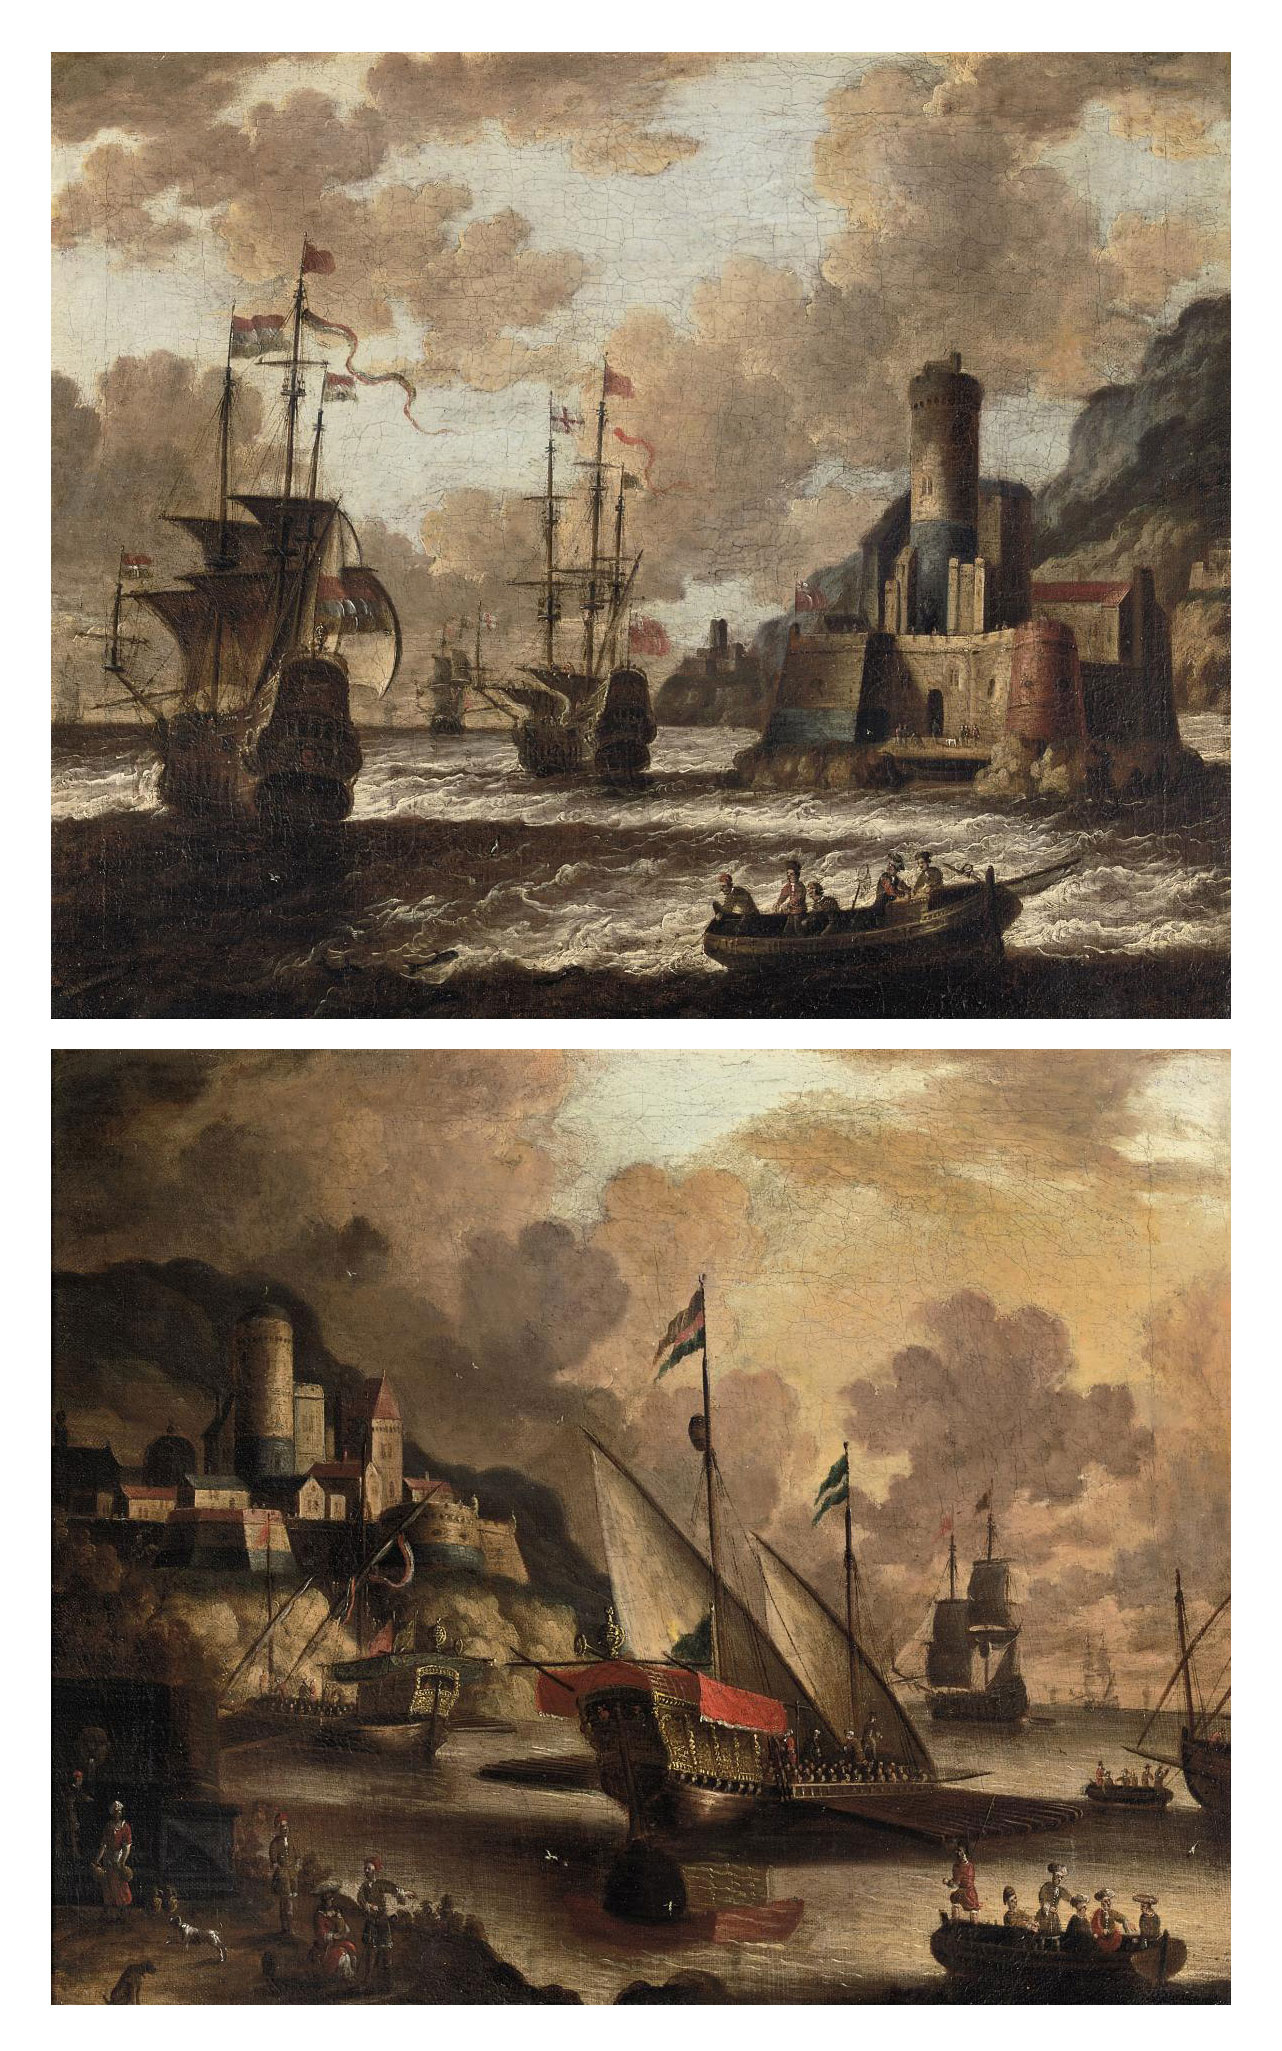 Dutch and English Man O'War off the coast near a fortified town; and Galley's and other ships at anchor in a natural harbor near a fortified town